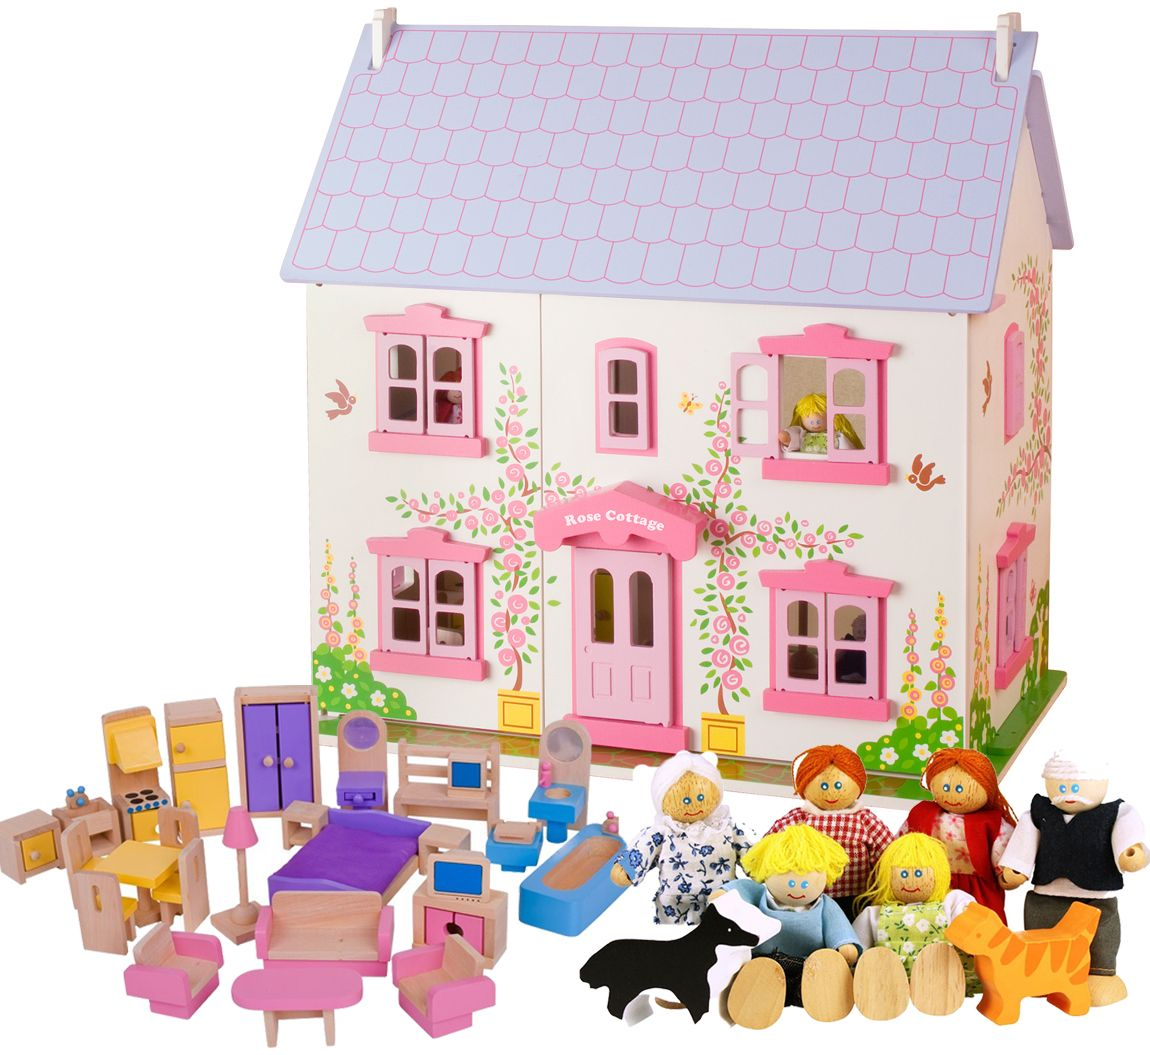 Captivating House · Bigjigs Rose Cottage Dolls House + Furniture U0026 Family